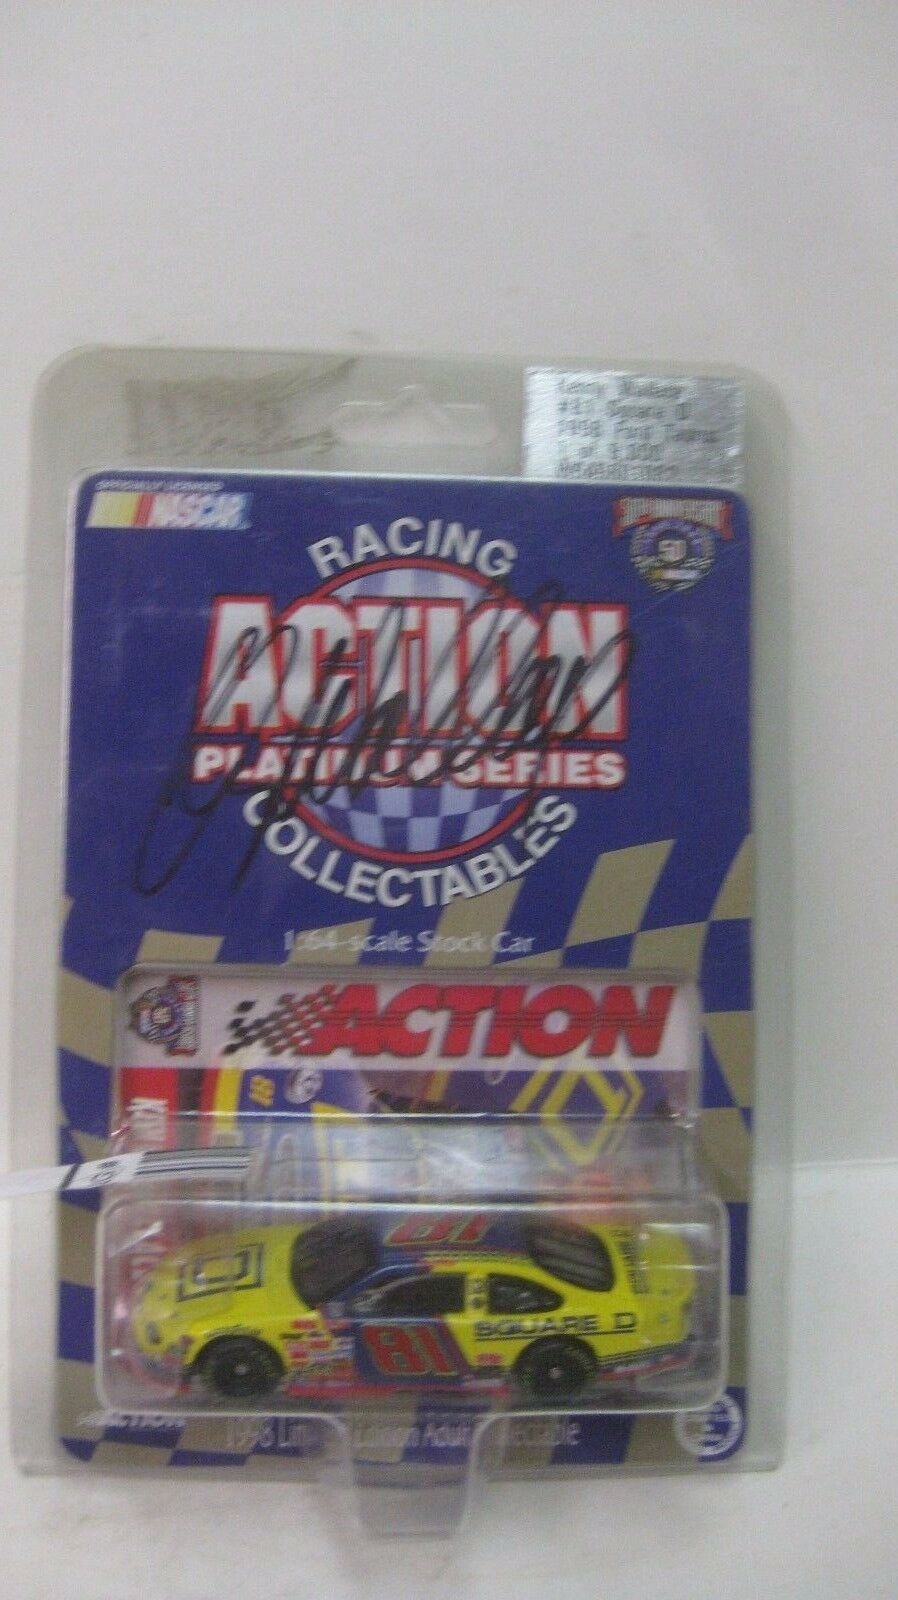 Rare Nascar Kenny Wallace Autographed Ford Taurus 1 64 Diecast NEW dc1474